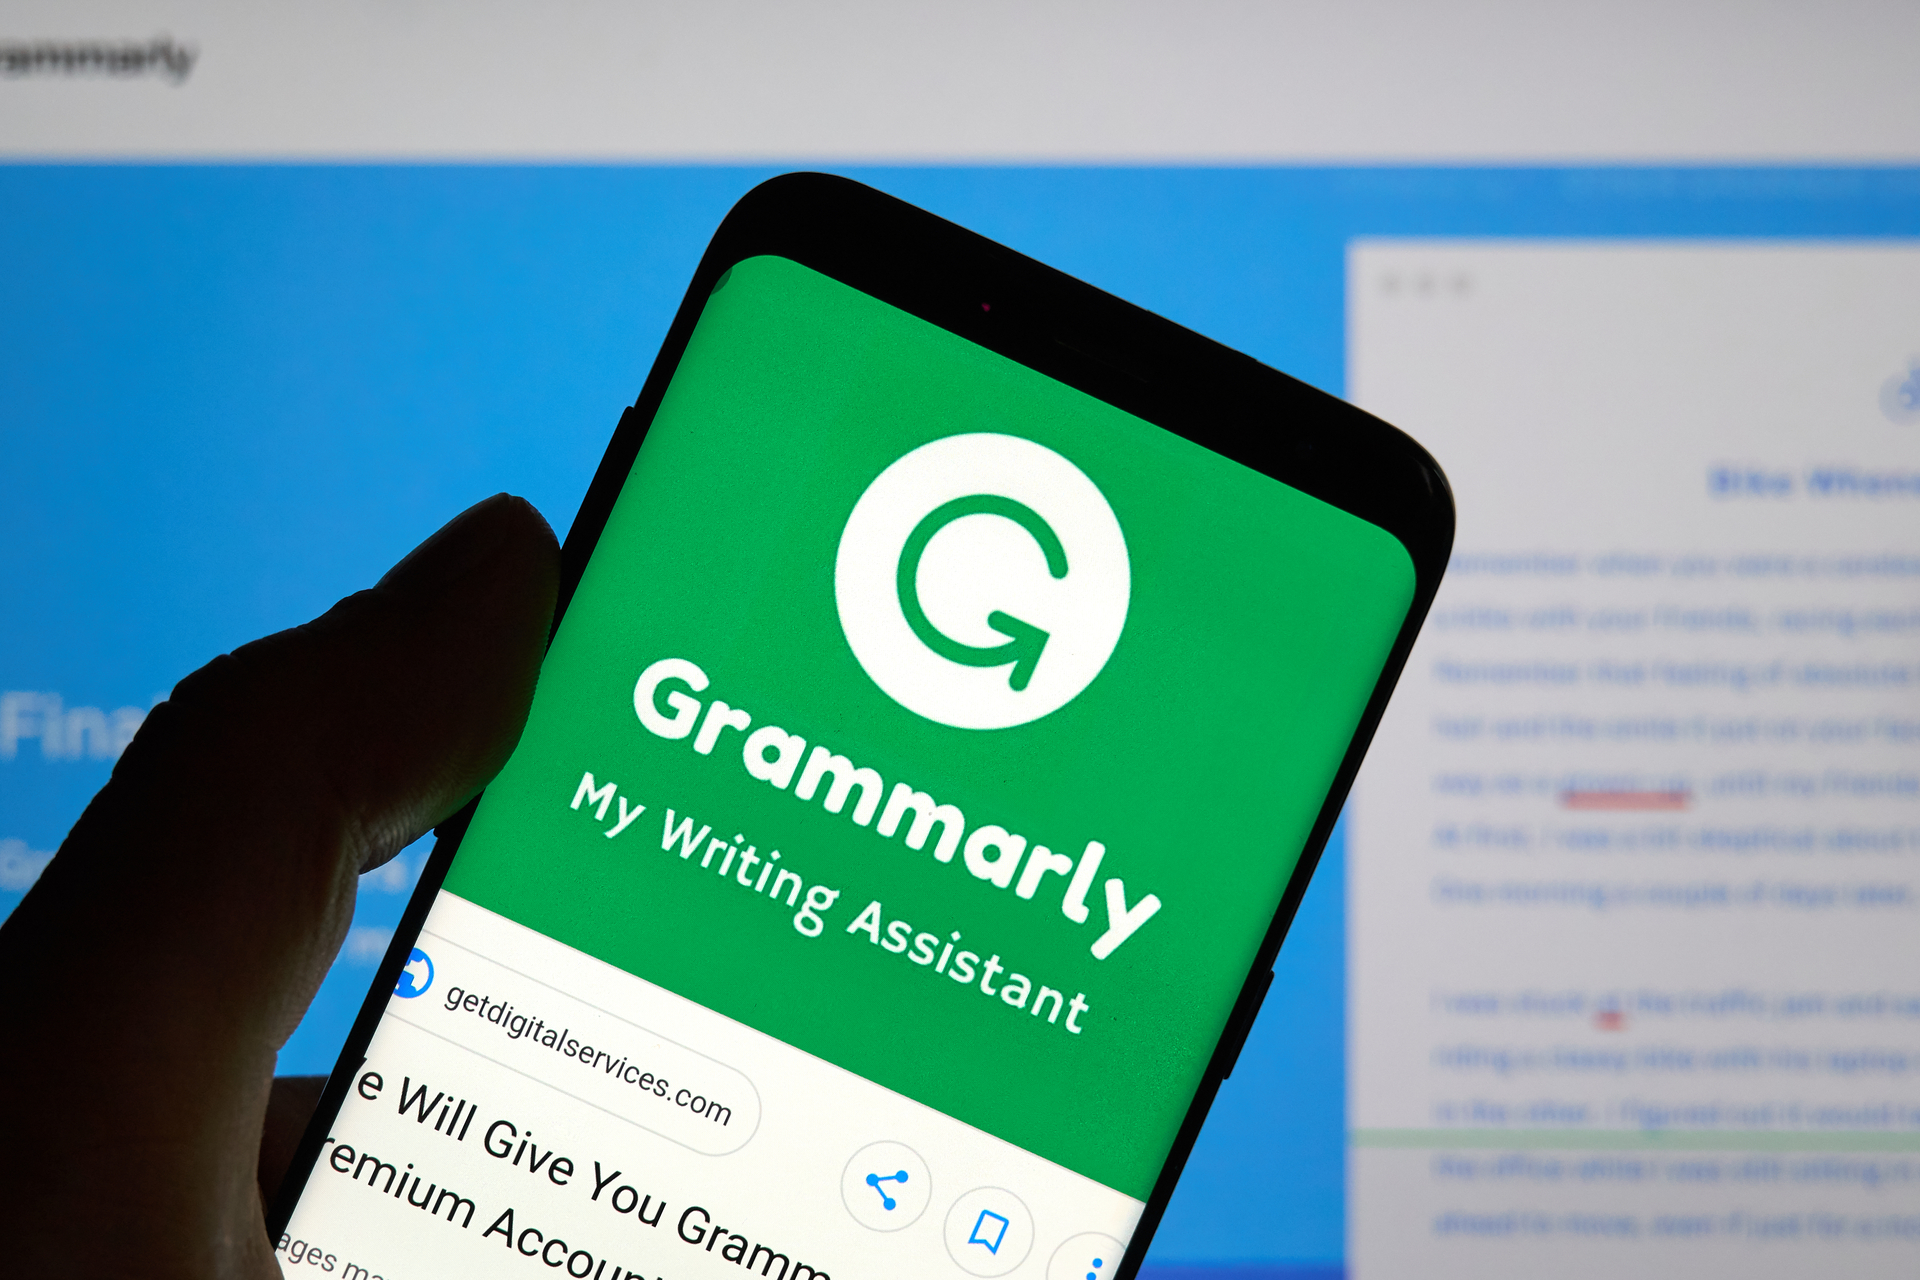 AI-based spell checker Grammarly raises $90m to take value above $1bn